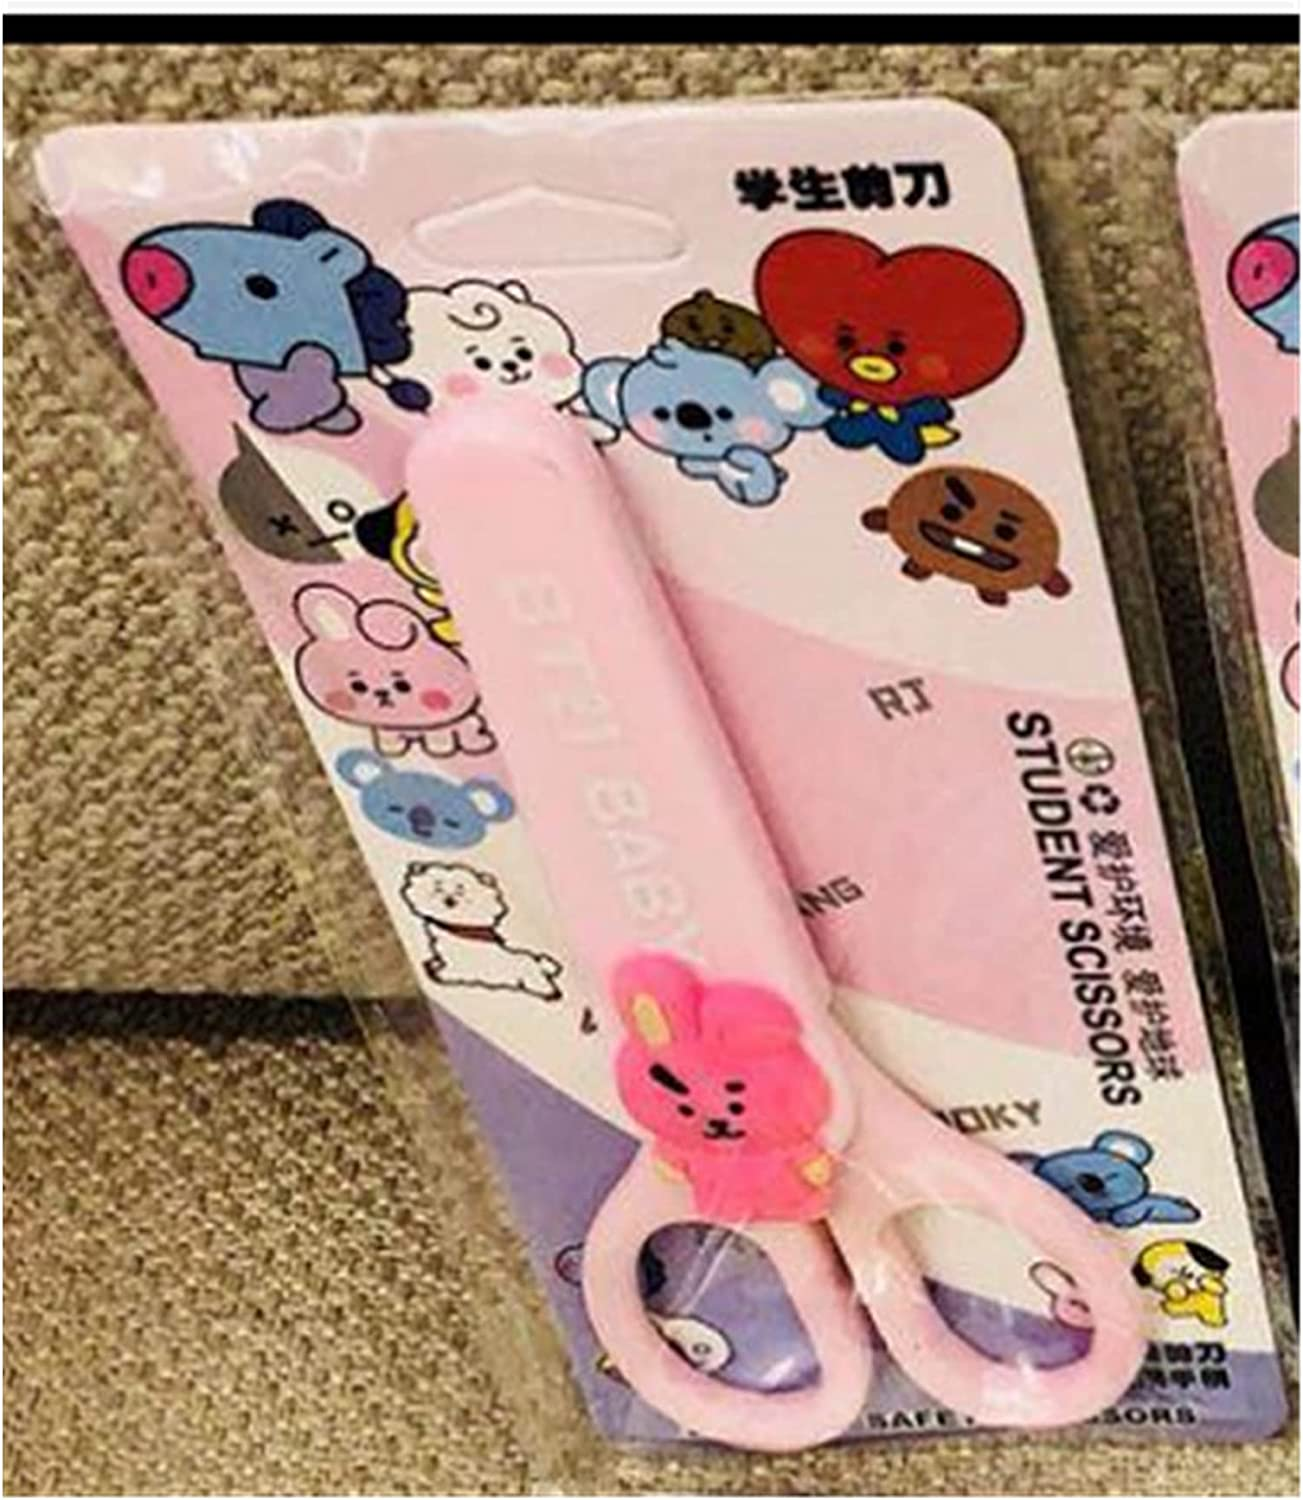 Paper-Cut Art Scissors with Recommendation Protective Cap Supply Sta Kids Cover Selling and selling